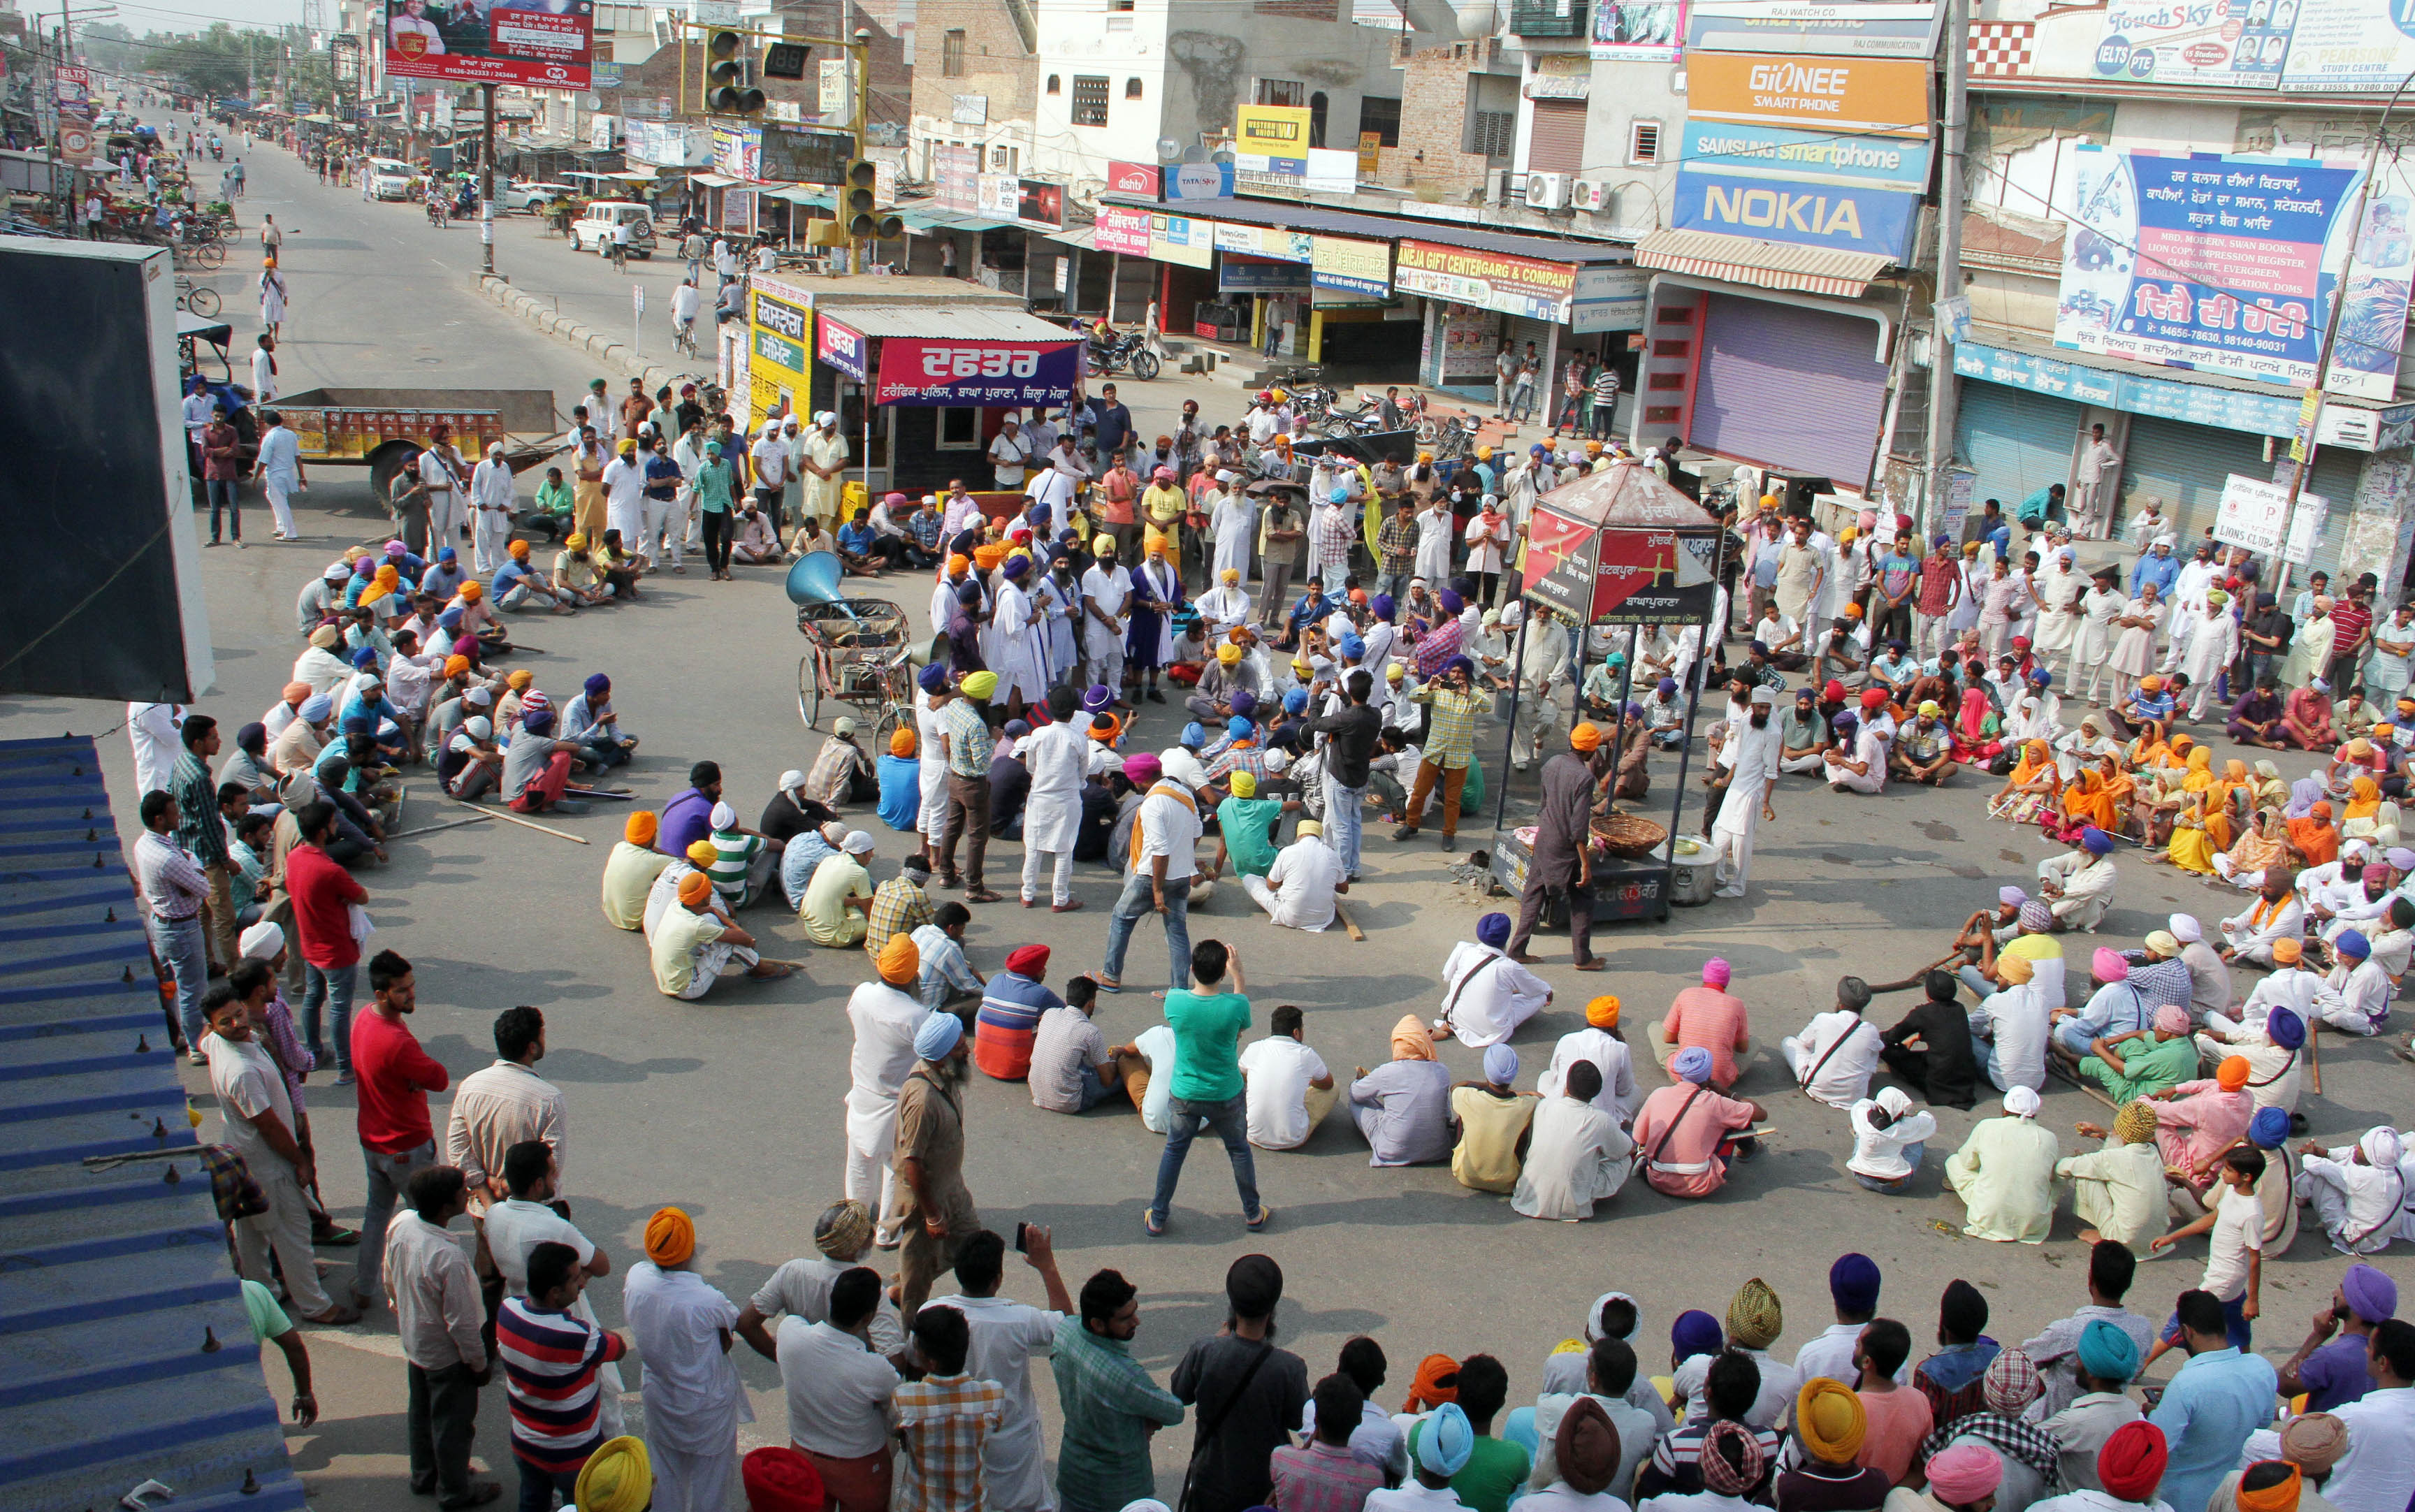 Sikh community staging a demonstration over the alleged desecration of a holy book at Baghapurana in Moga, India, on Oct. 14, 2015